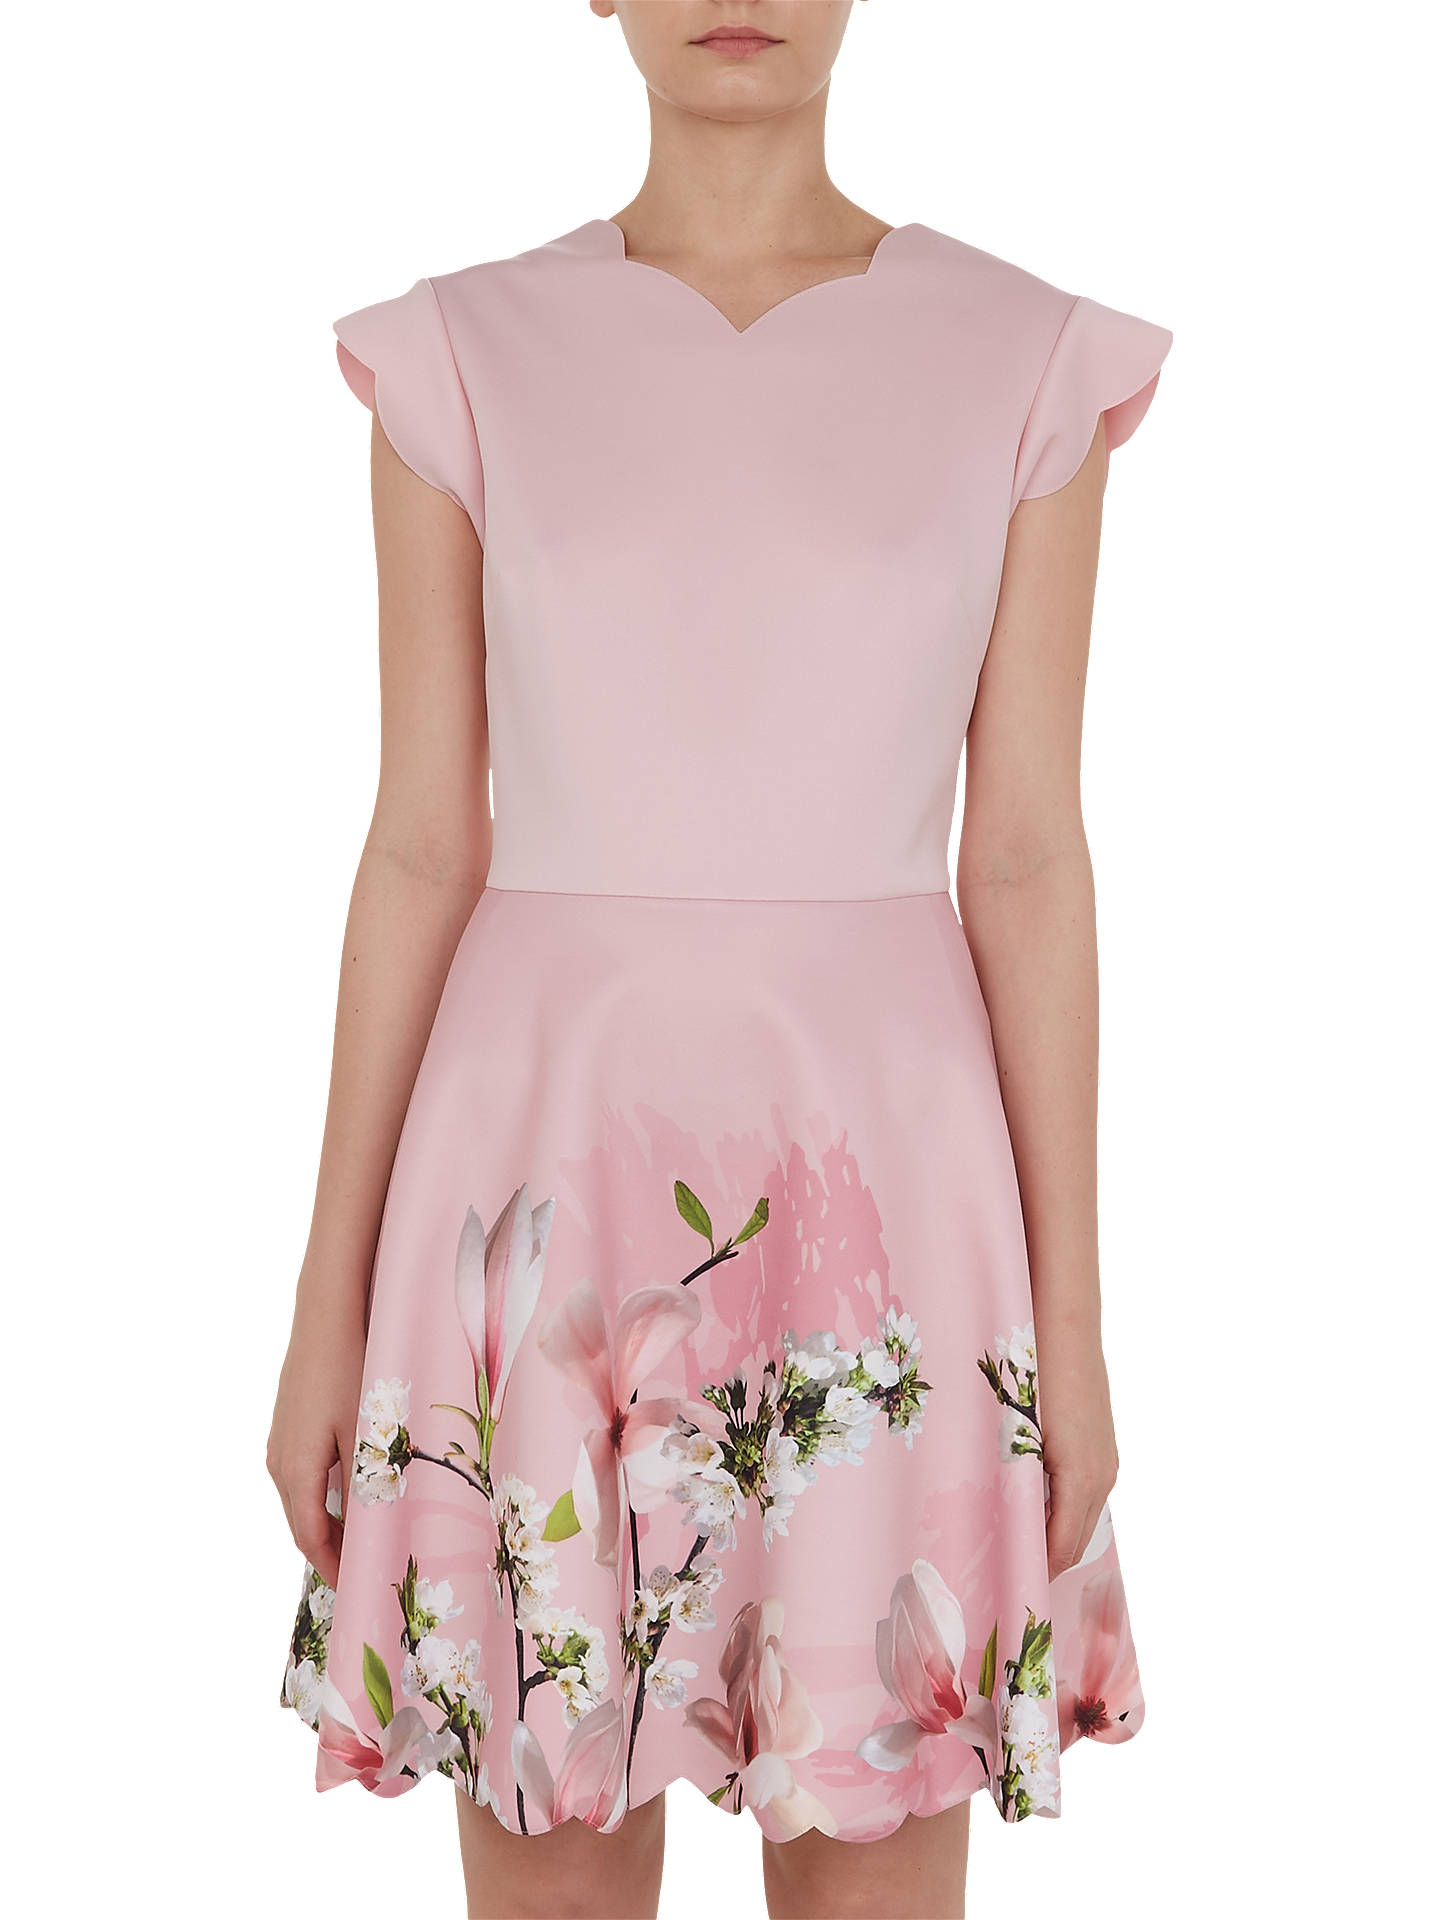 91c2d73e6adce View All Women s Dresses. Previous Image Next Image. Buy Ted Baker Grettae  Harmony Skater Dress